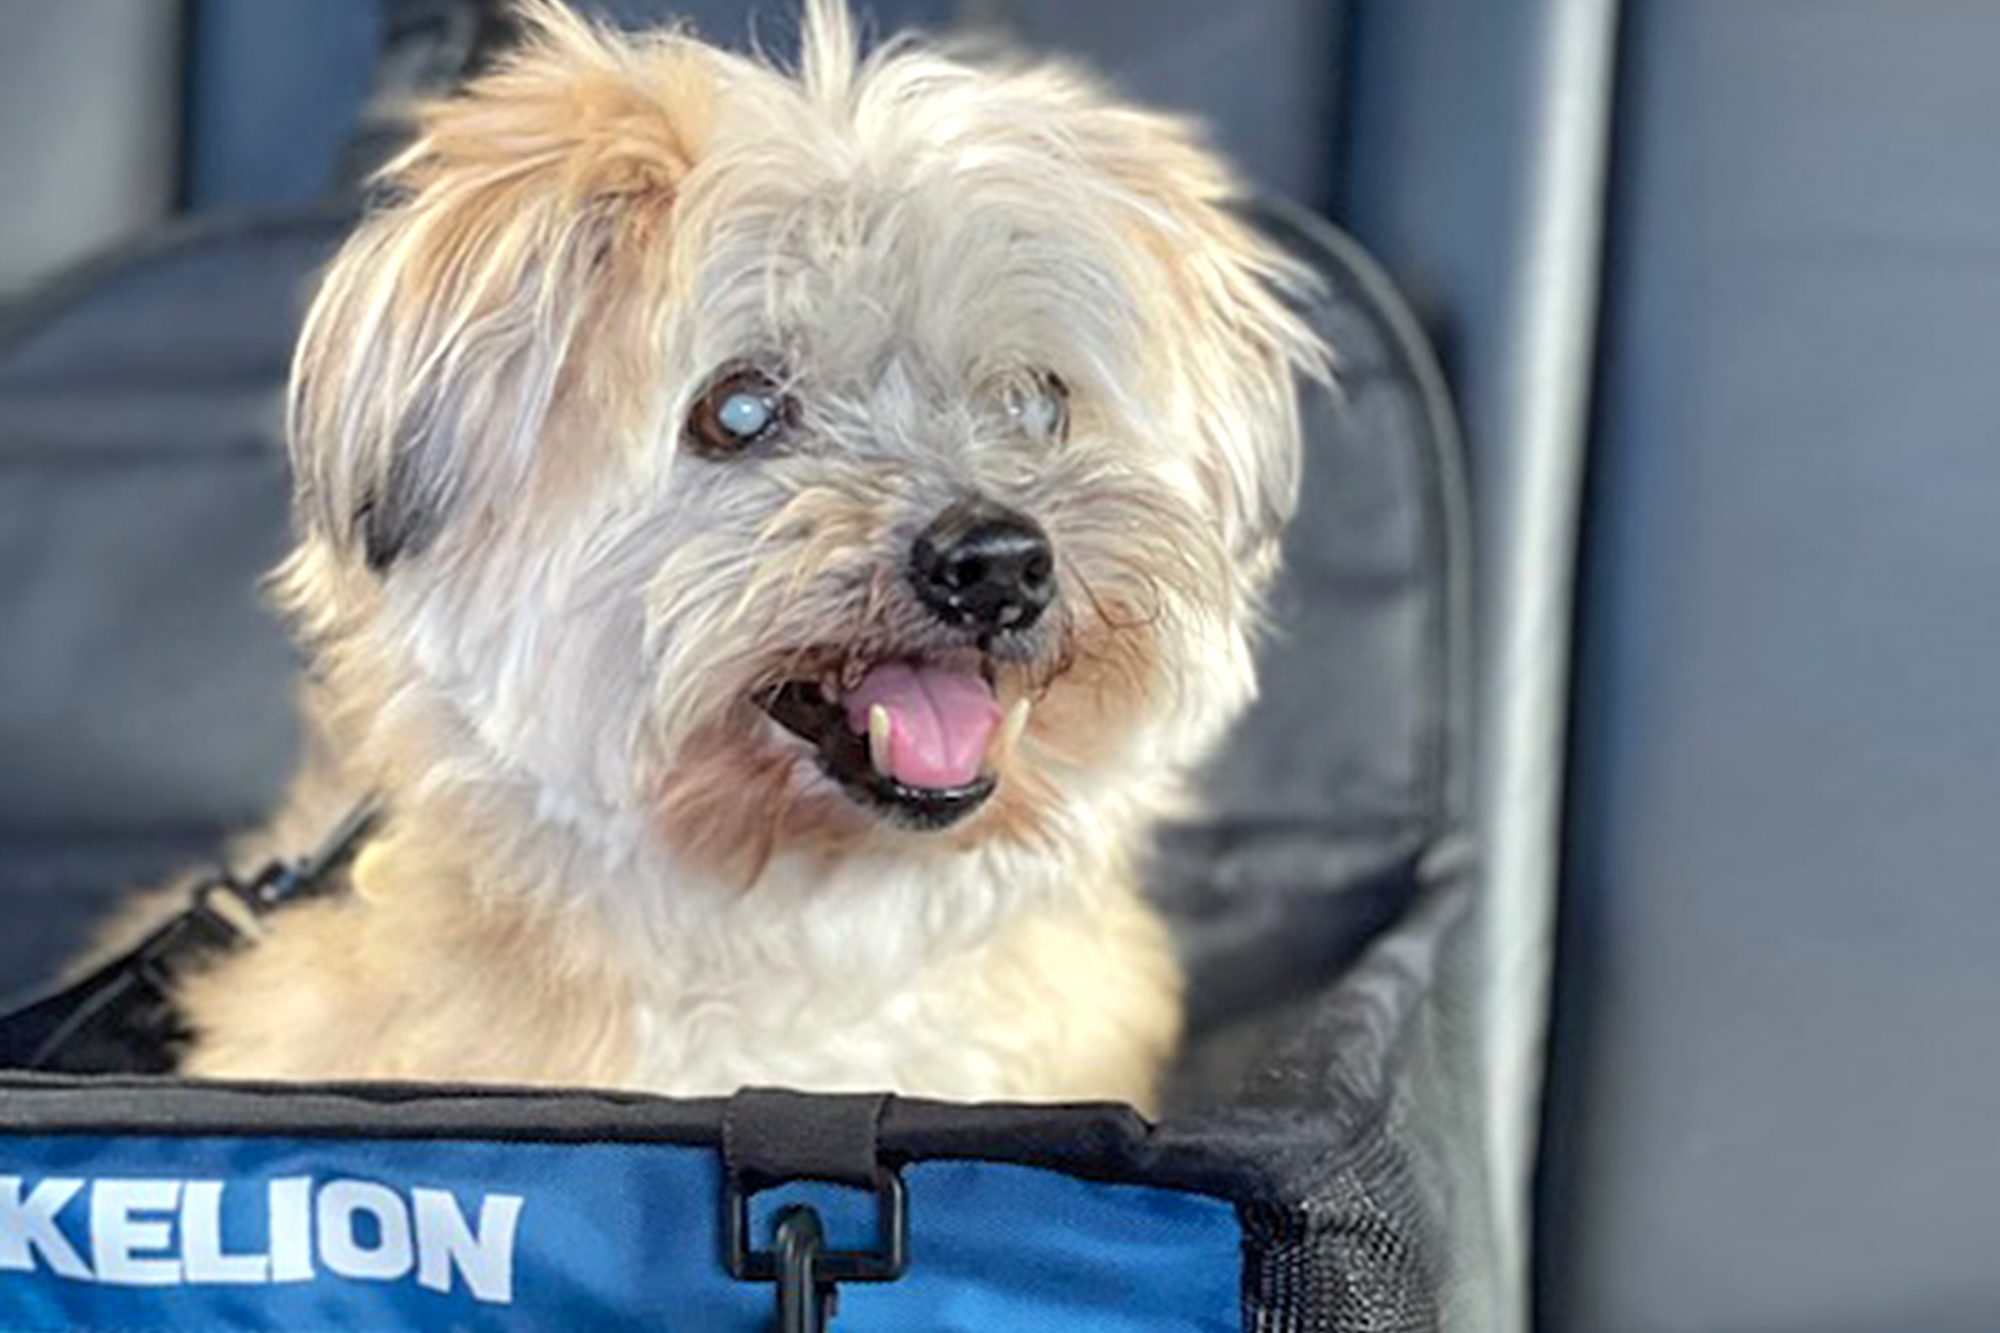 light colored dog in a blue carrier